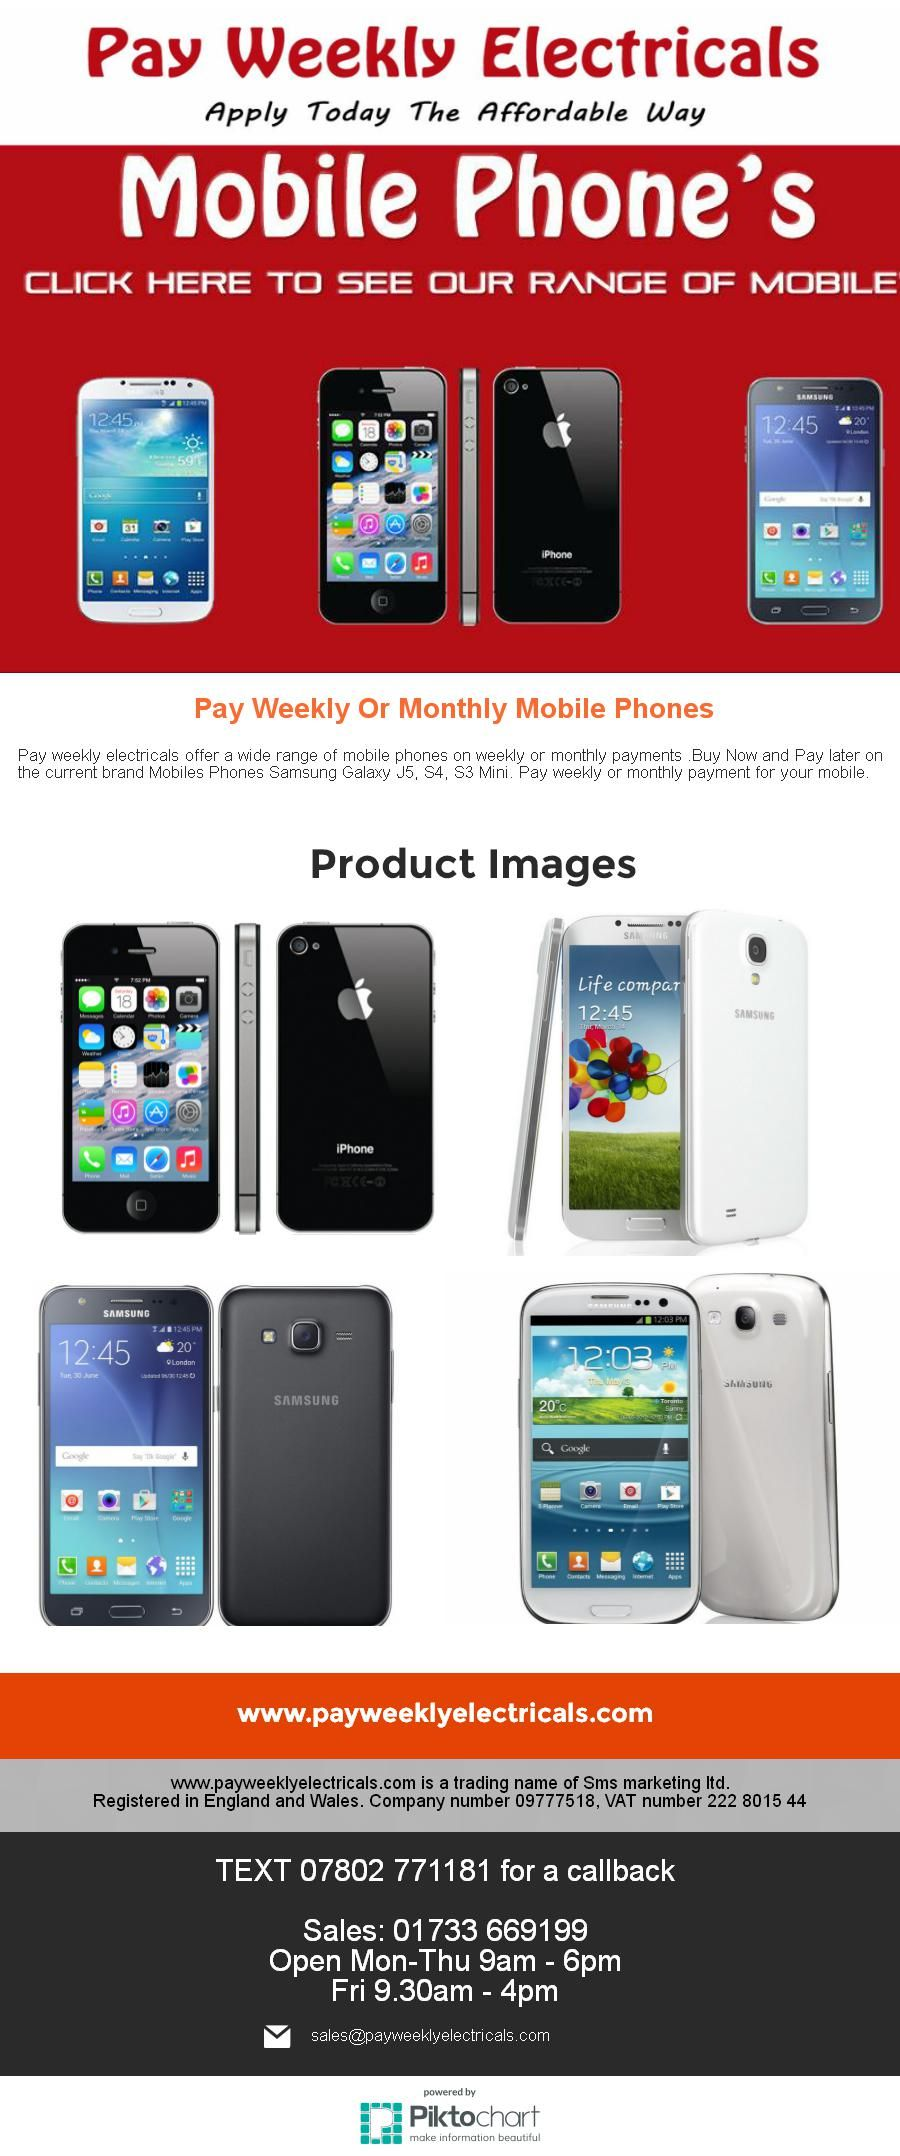 Pay Weekly Or Monthly Mobiles Phones – 01733669199 Buy the